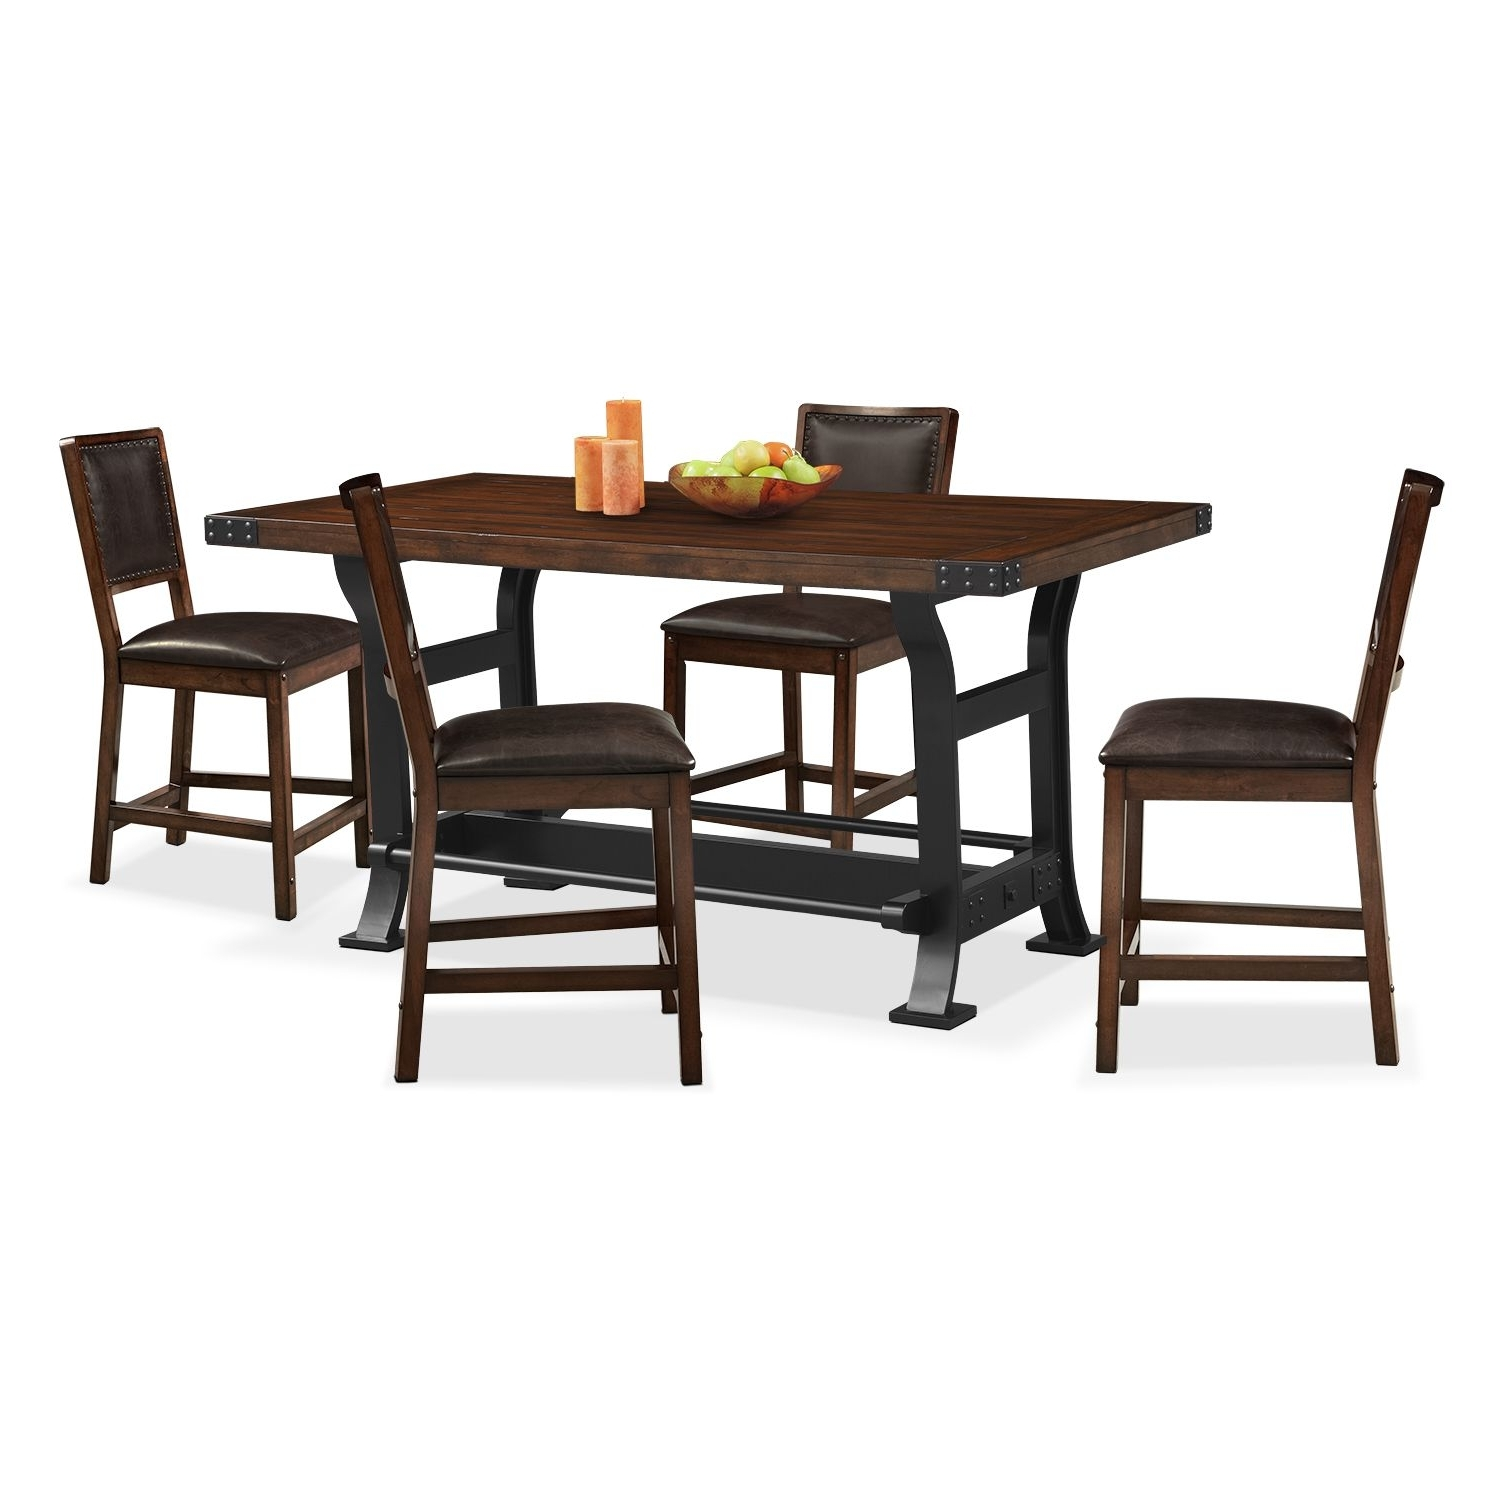 Gavin 7 Piece Dining Sets With Clint Side Chairs With Regard To Fashionable Hampton Counter Height Dining Table And 6 Upholstered Stoo (View 19 of 25)